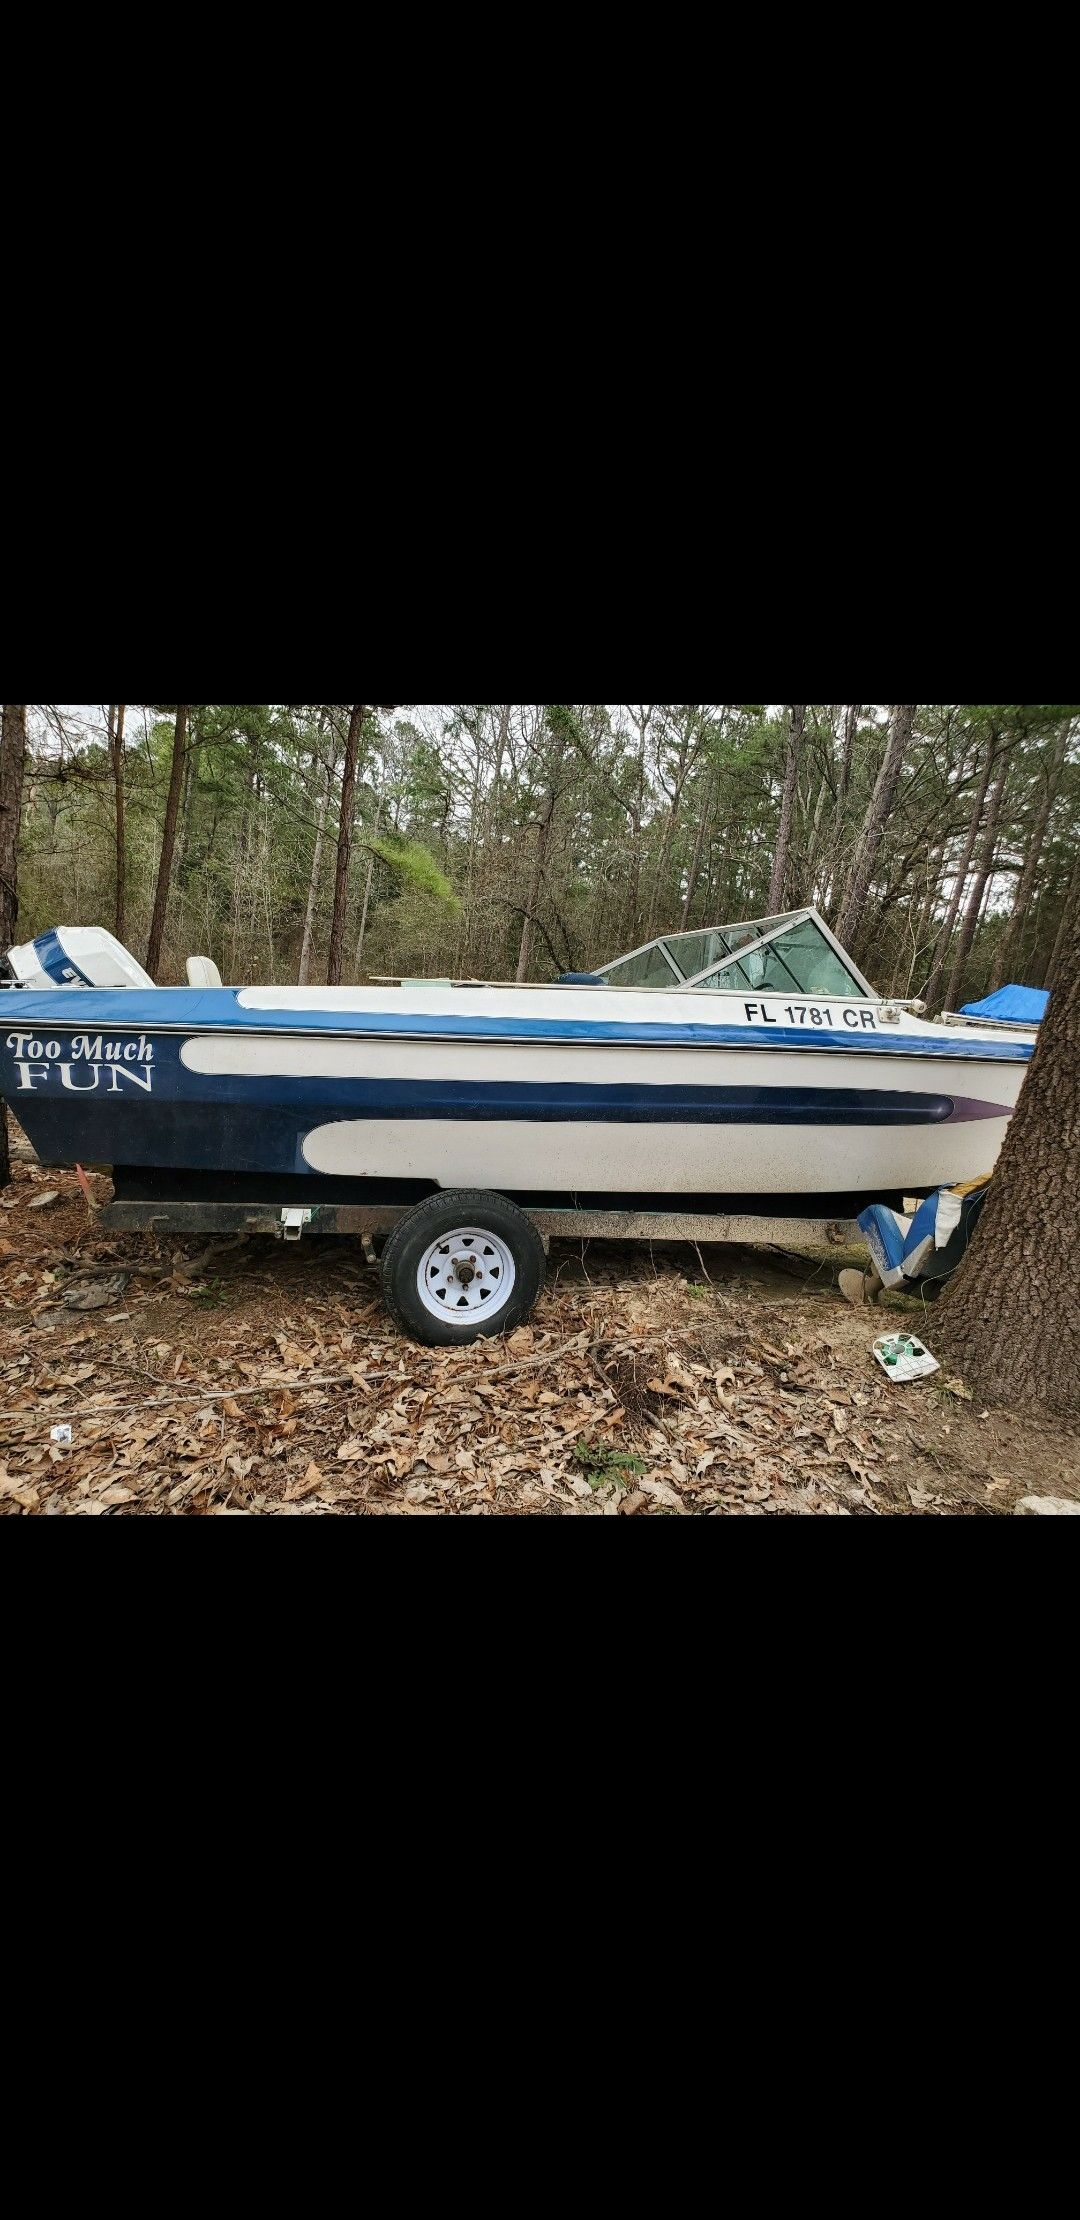 Evinrude motor and boat